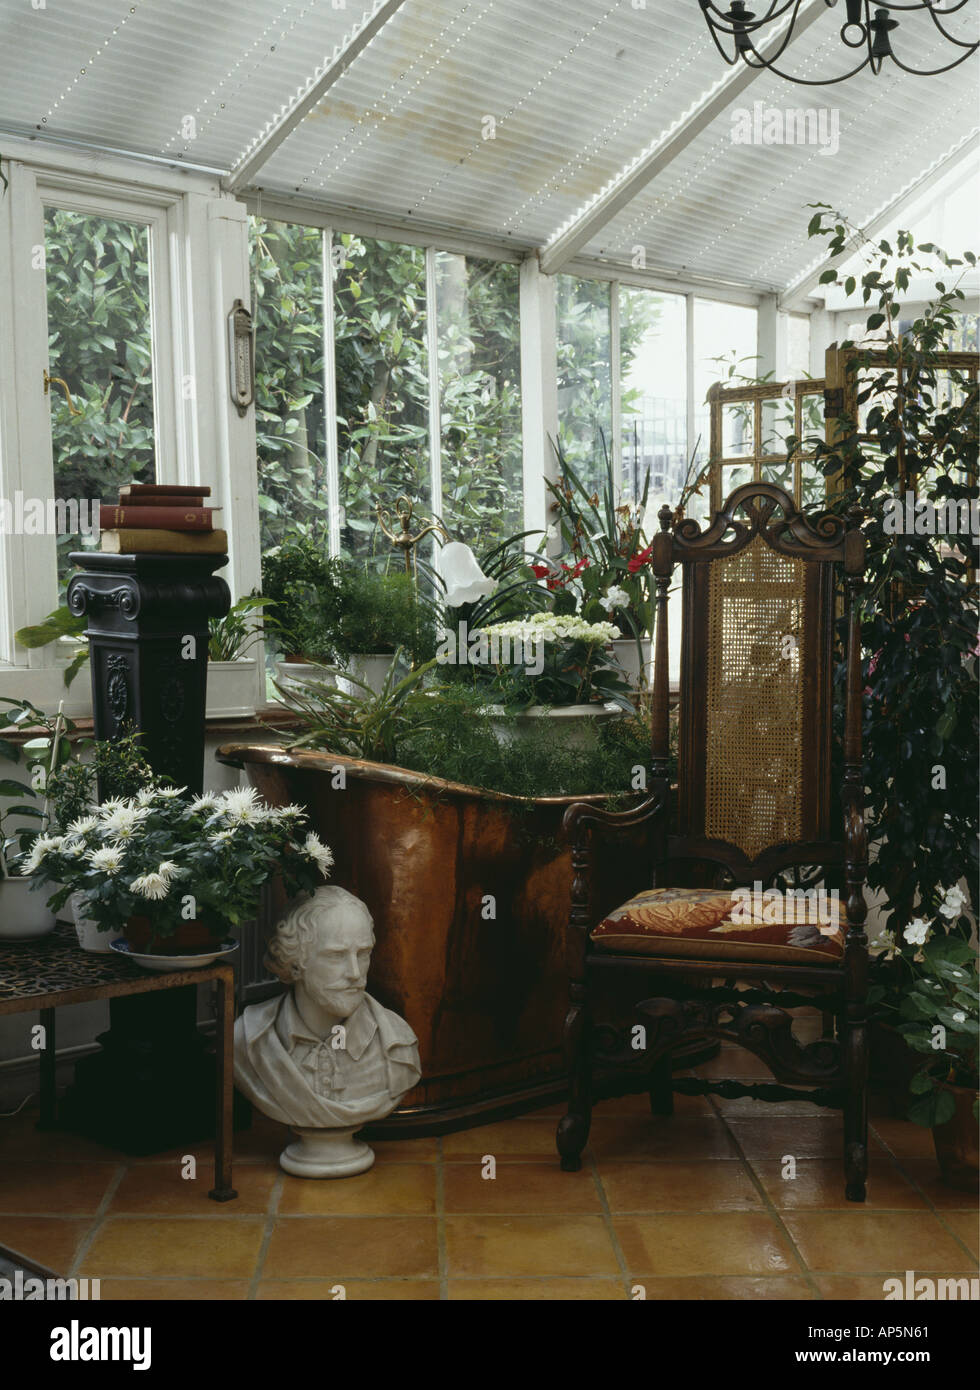 Marble bust and antique Jacobean chair in traditional conservatory filled with green houseplants Stock Photo